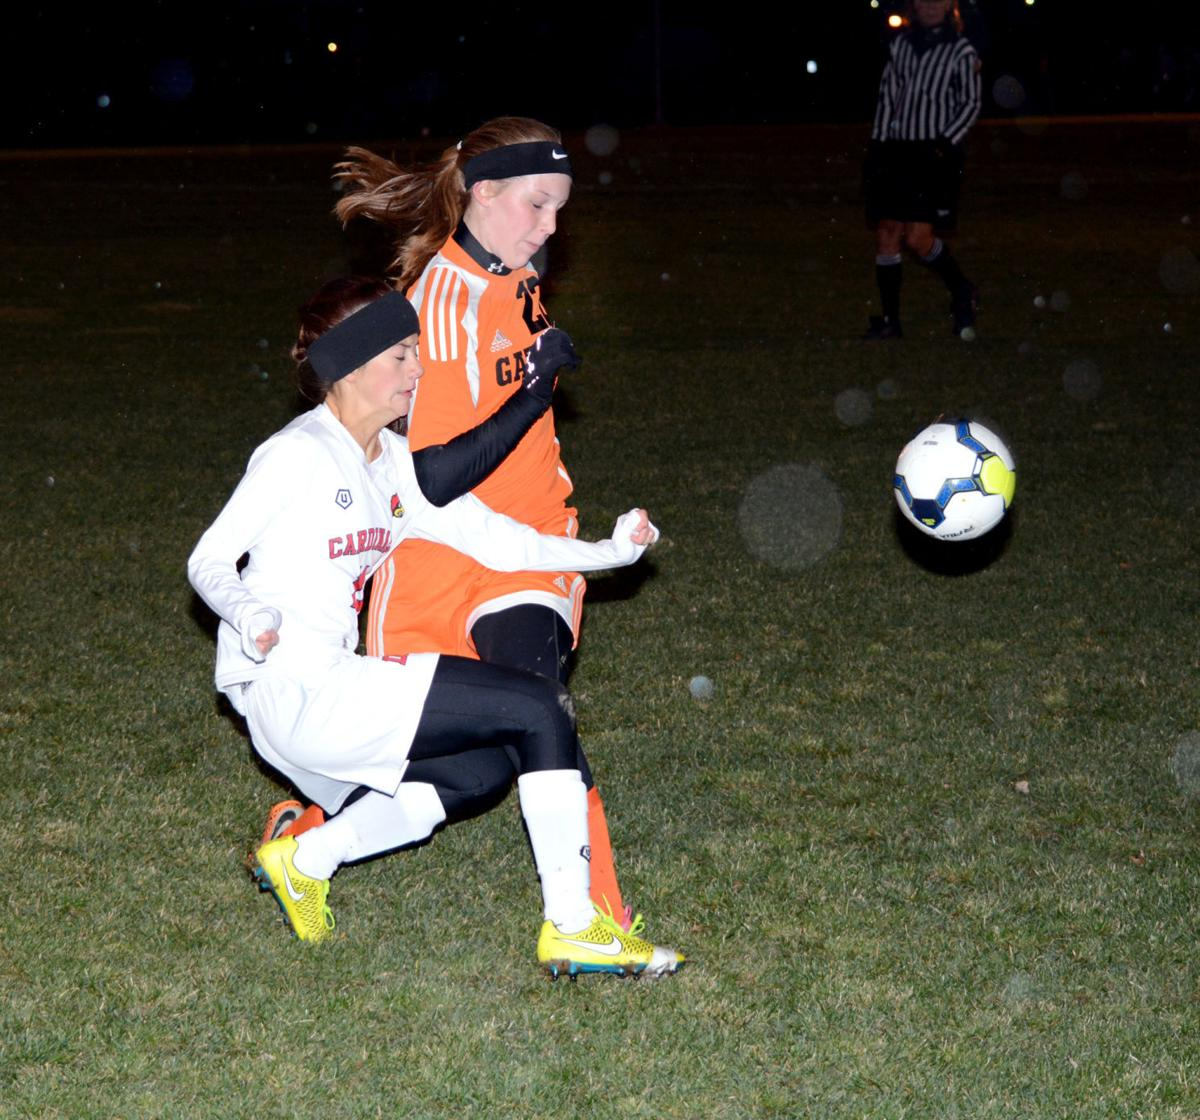 port allegany single catholic girls Ridgway girls soccer advanced in the district 9 class a girls soccer playoffs with a 3-0 win over port allegany in a first-round matchup tuesday night at memorial.